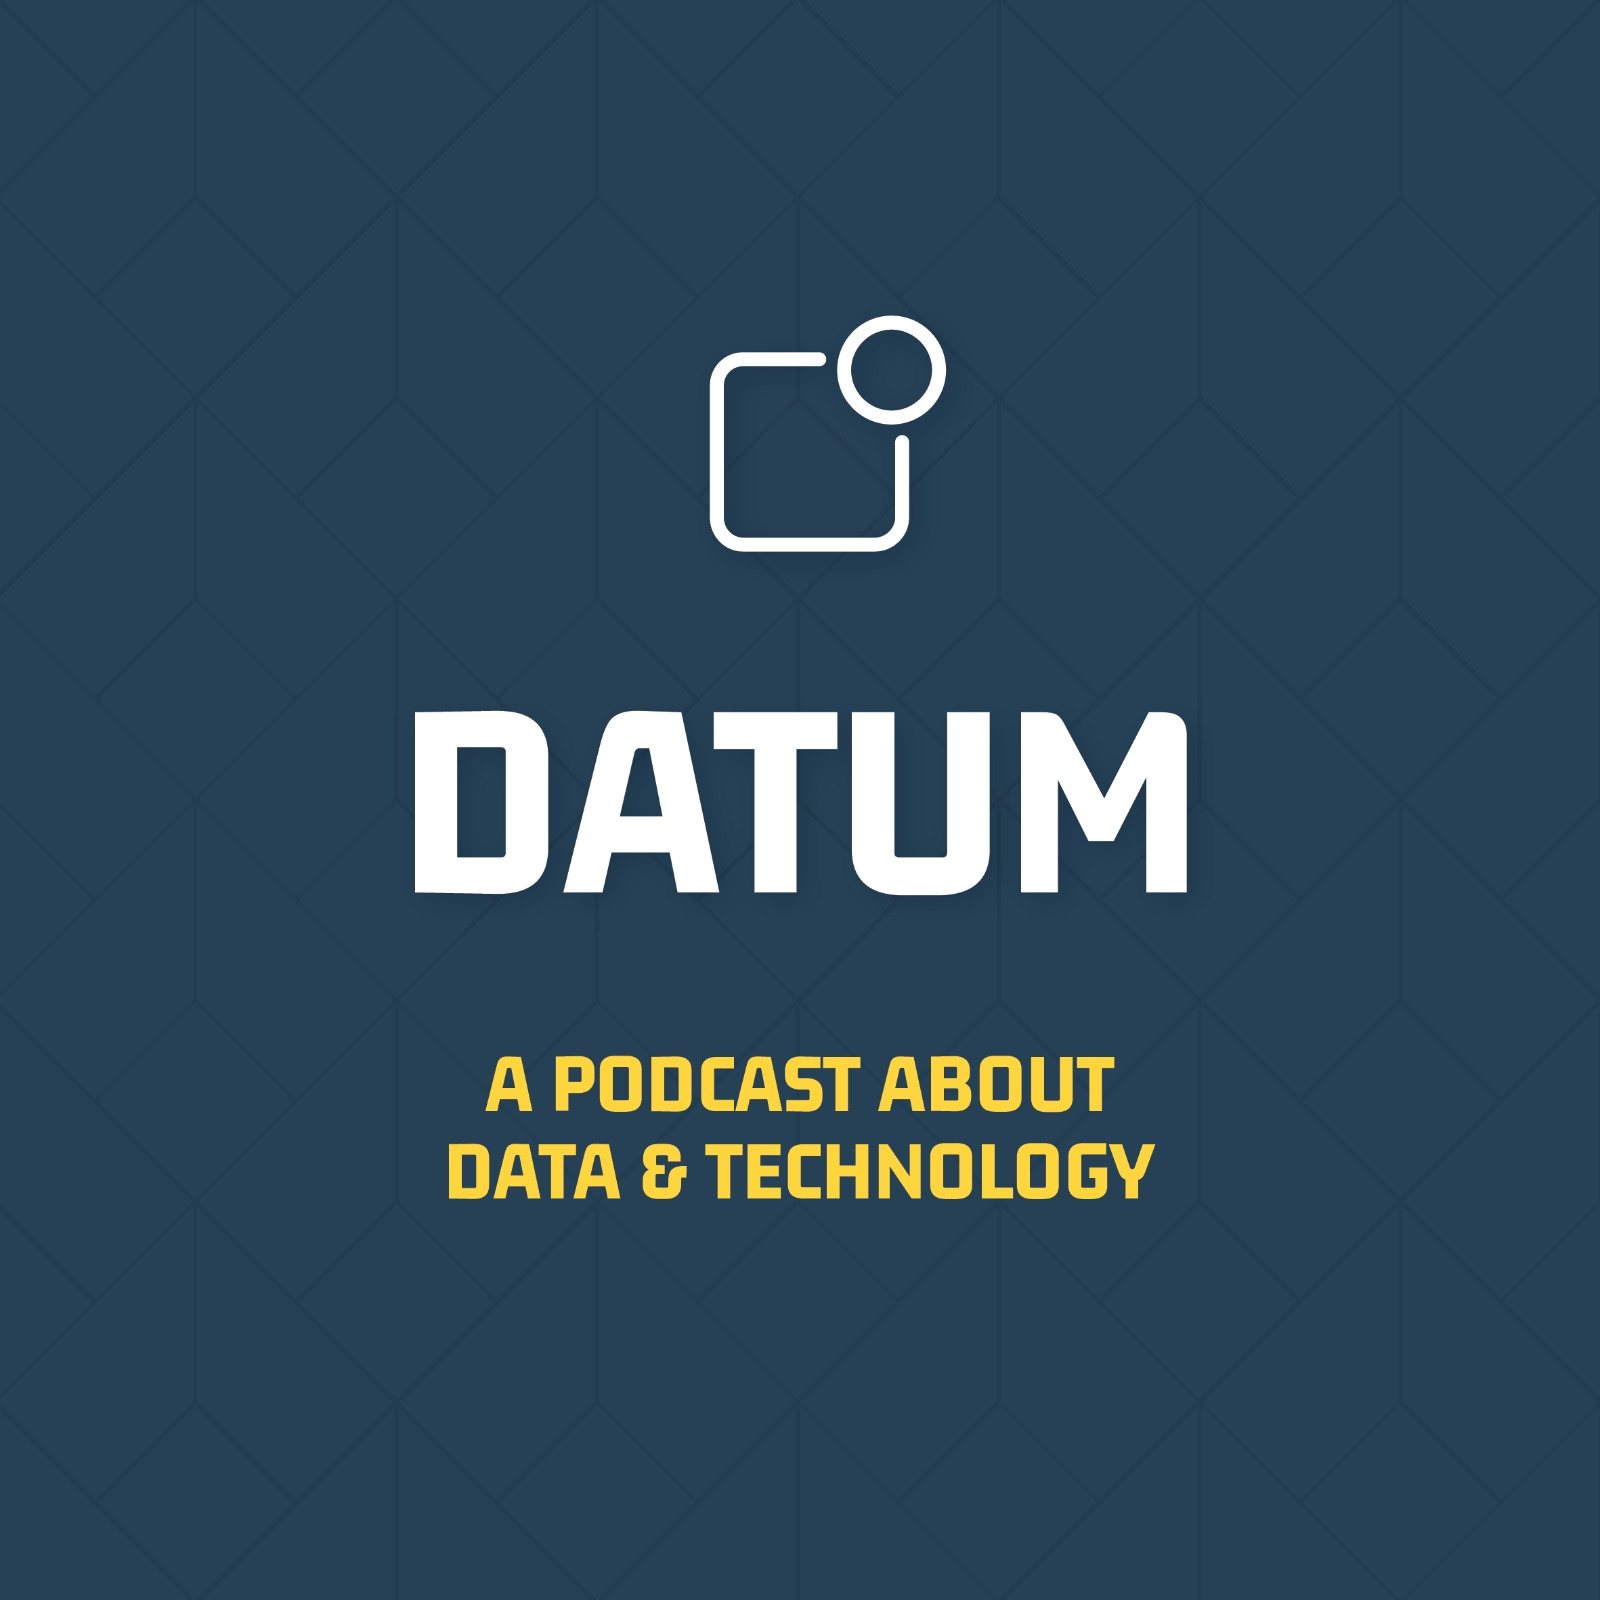 The Datum Podcast